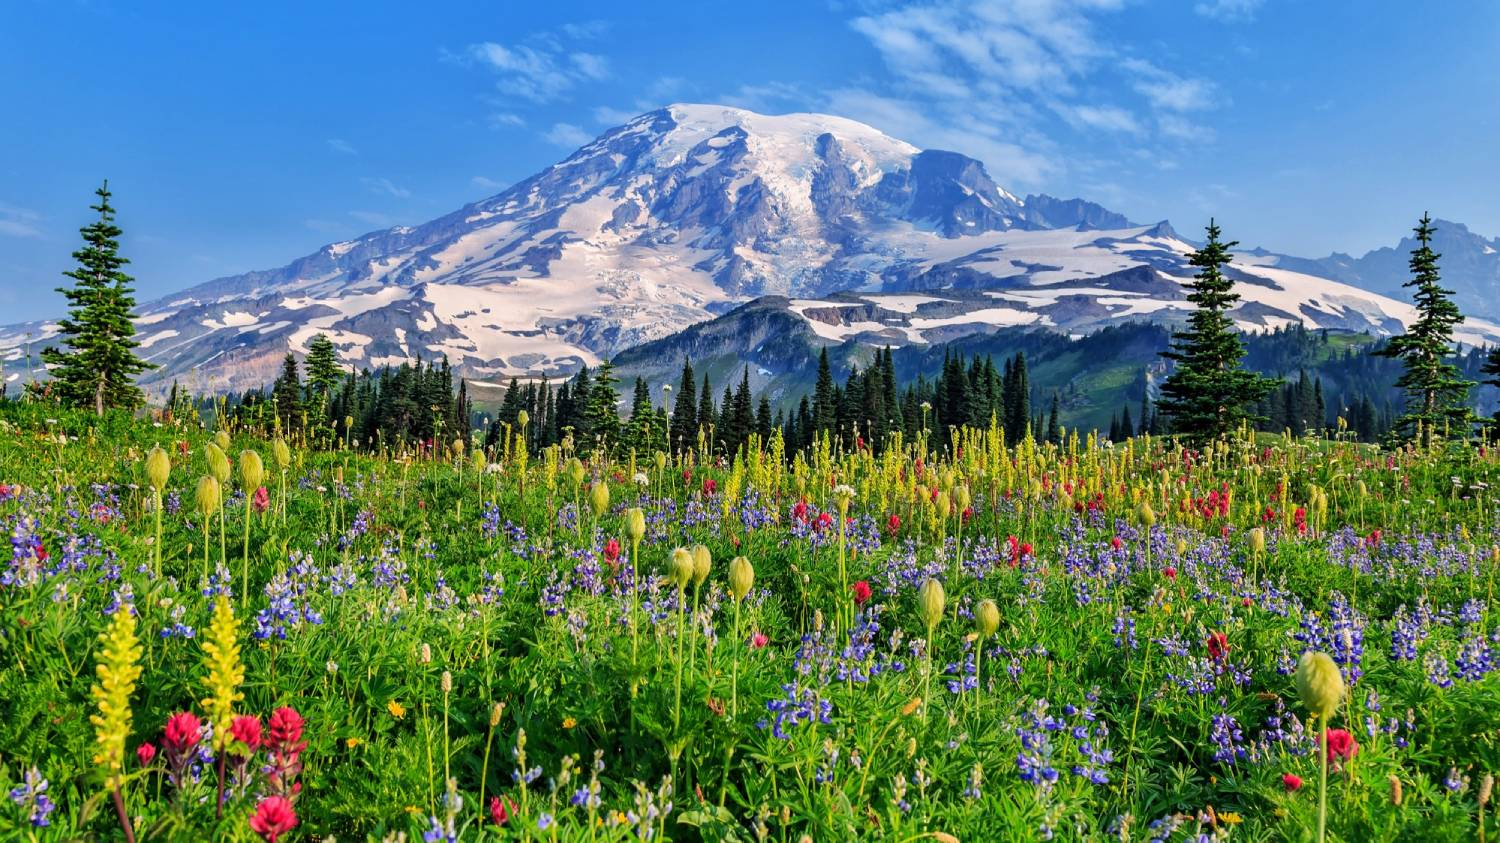 Mount Rainier National Park - Things To Do In Seattle